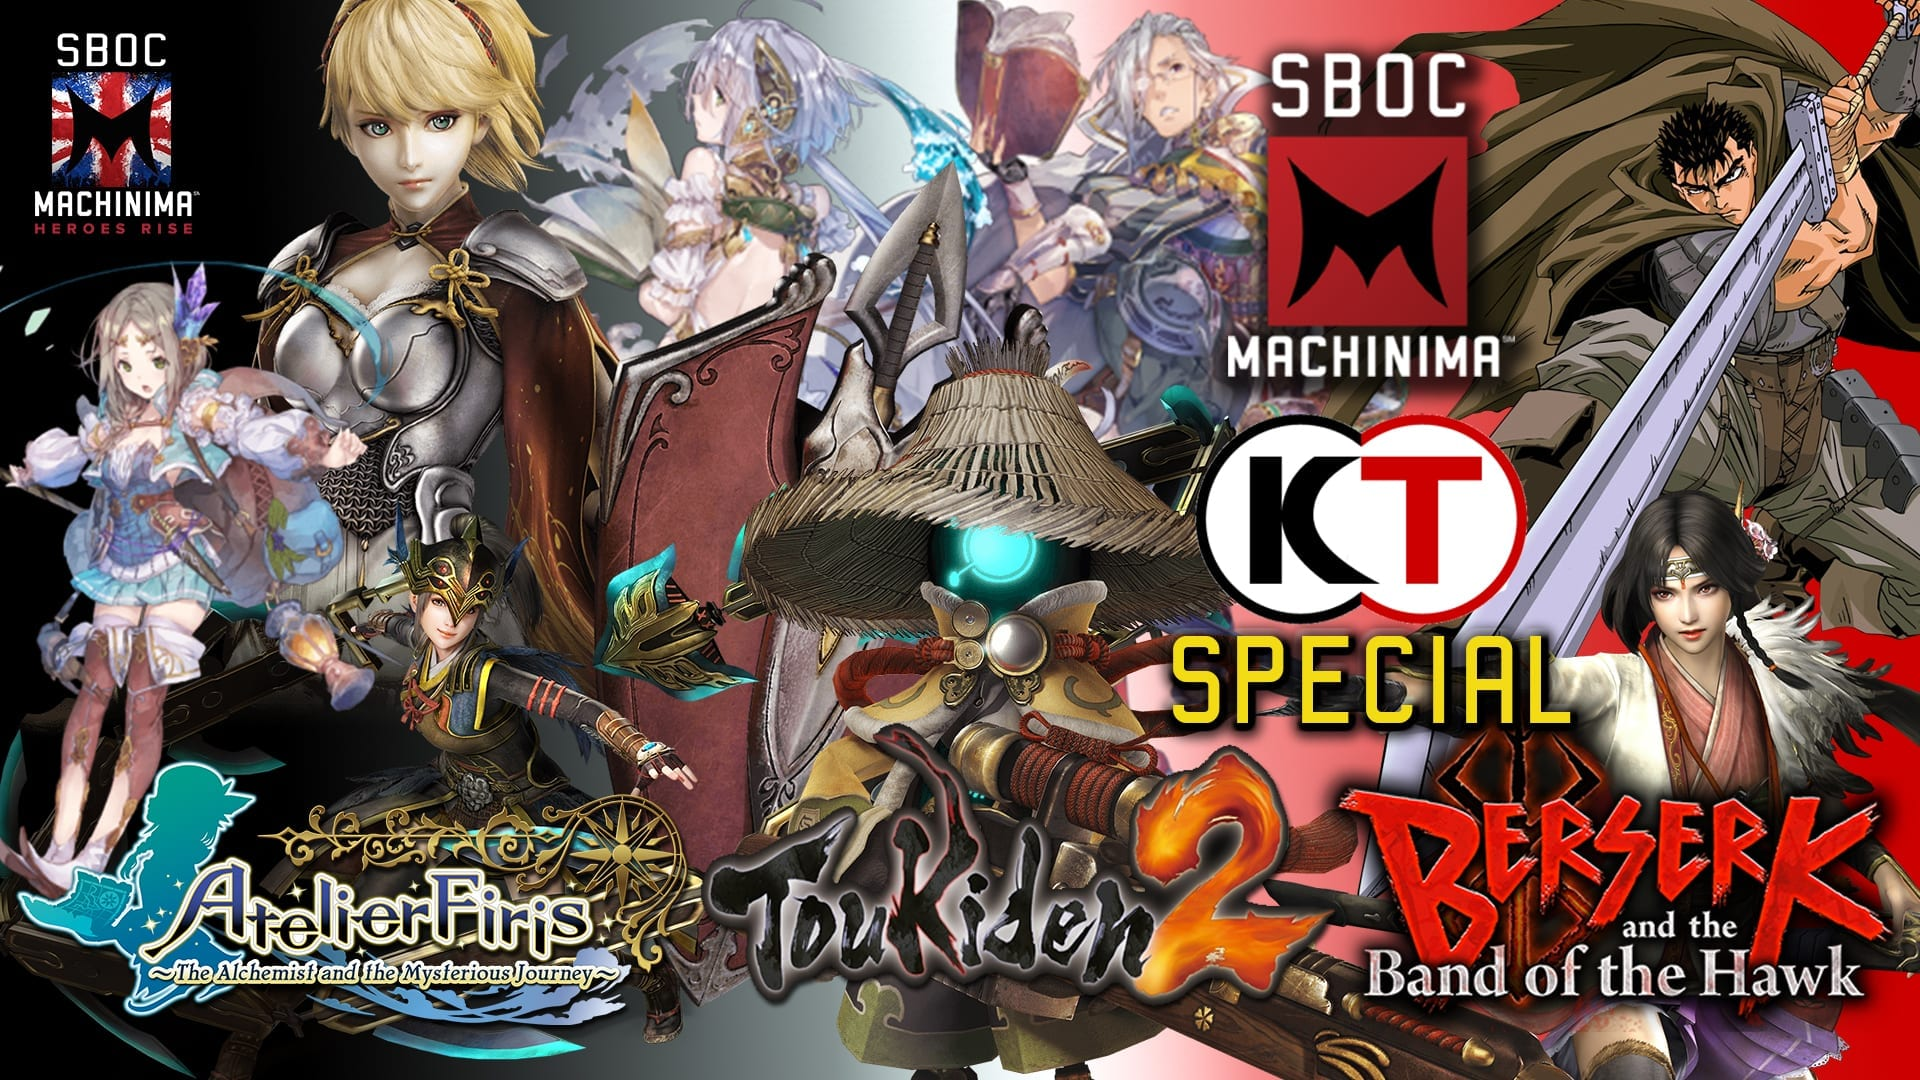 THE KOEI TECMO SPECIAL!